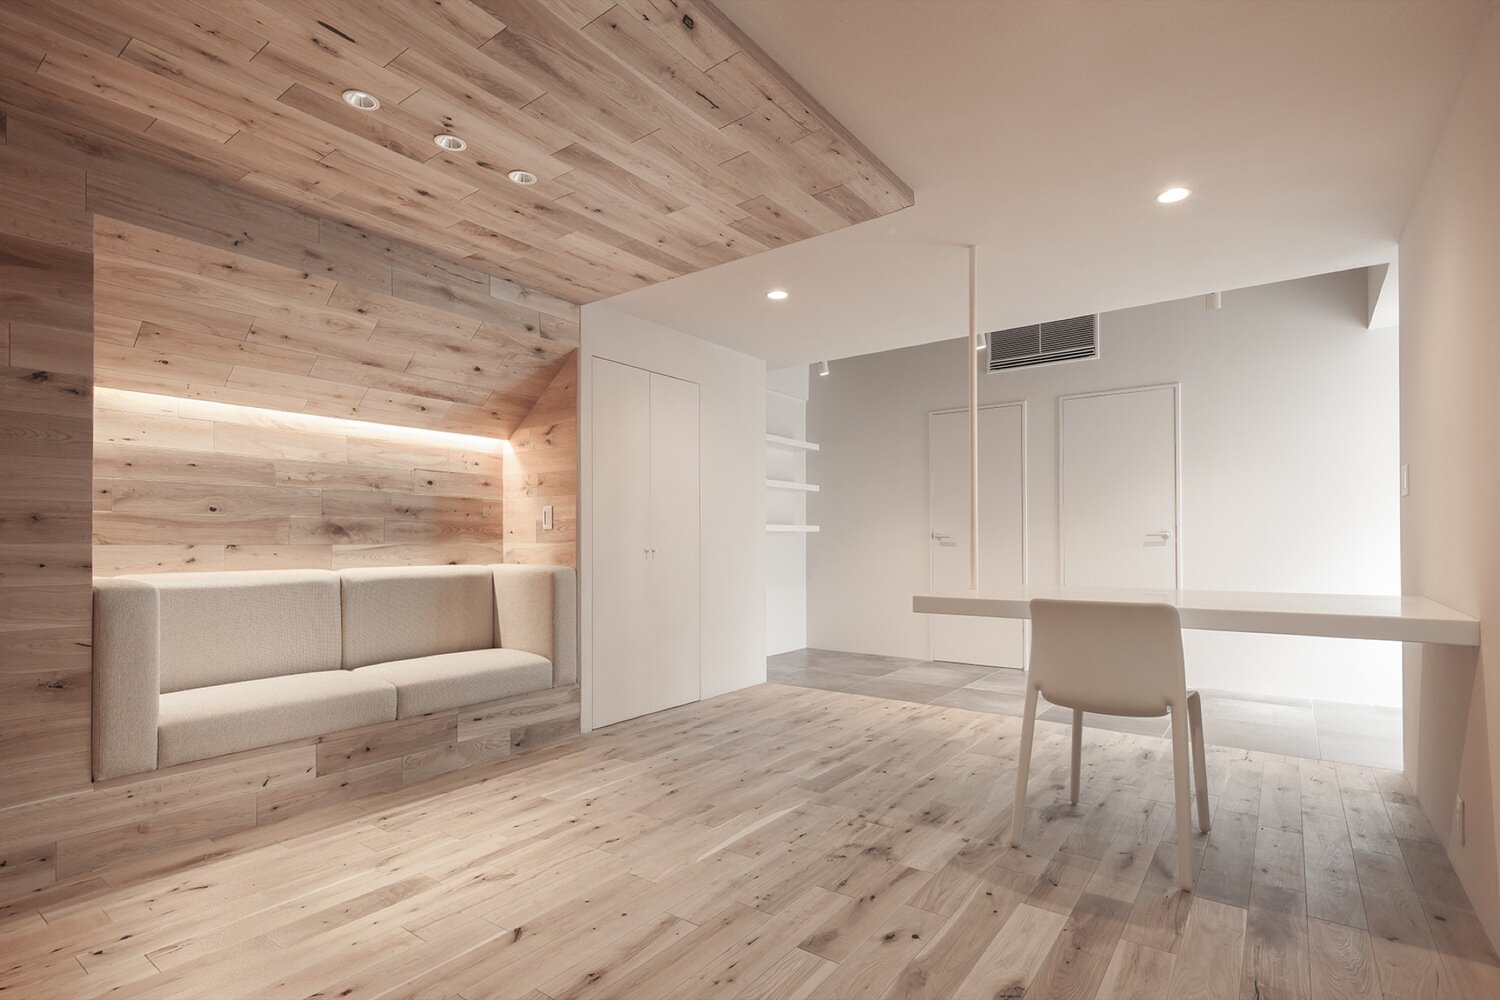 Shibuya Apartment 201 - Hiroyuki Ogawa Architects - Japan - Living Area 2 - Humble Homes